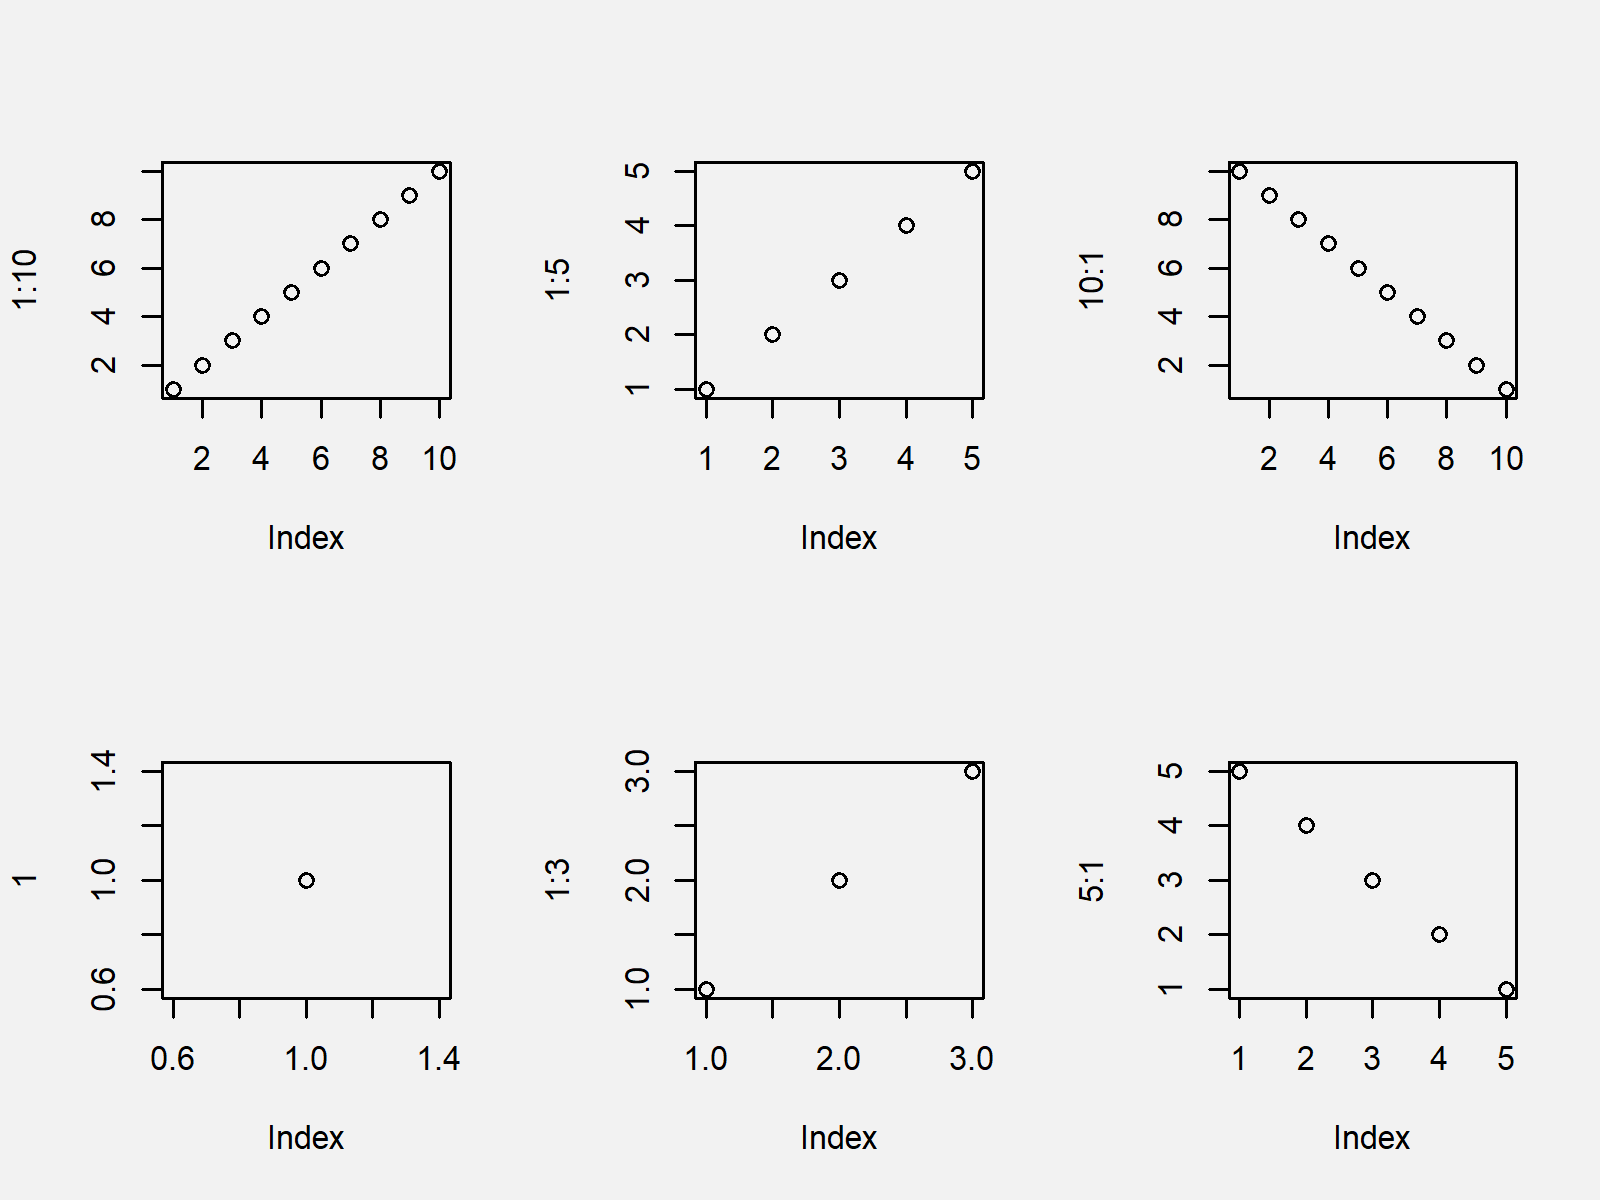 r graph figure 1 par function